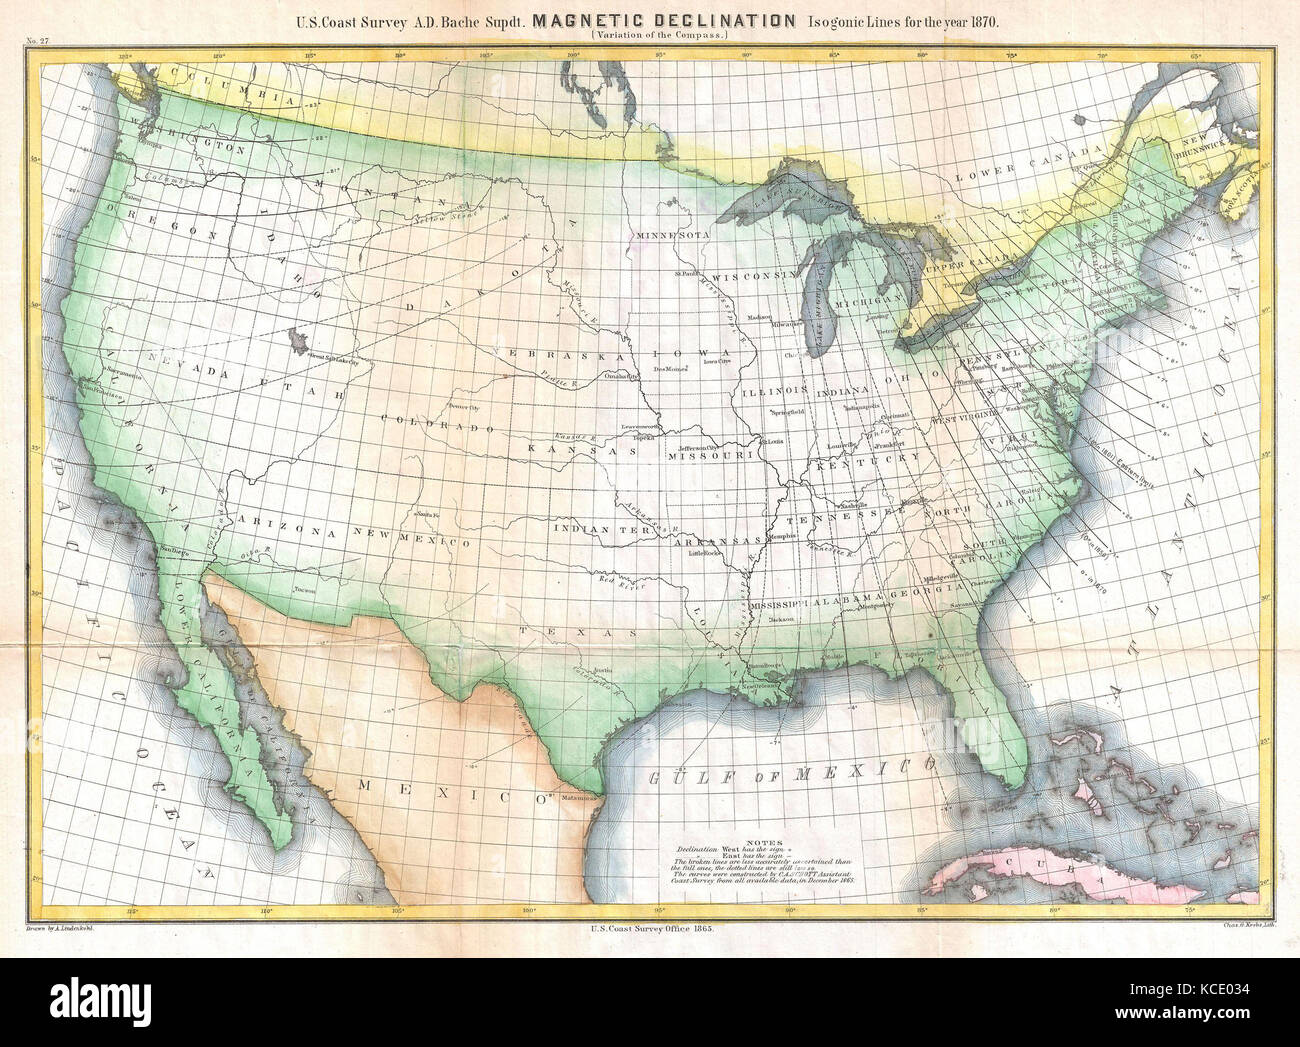 1870 US Coast Survey Map Showing Magnetic Declination in the